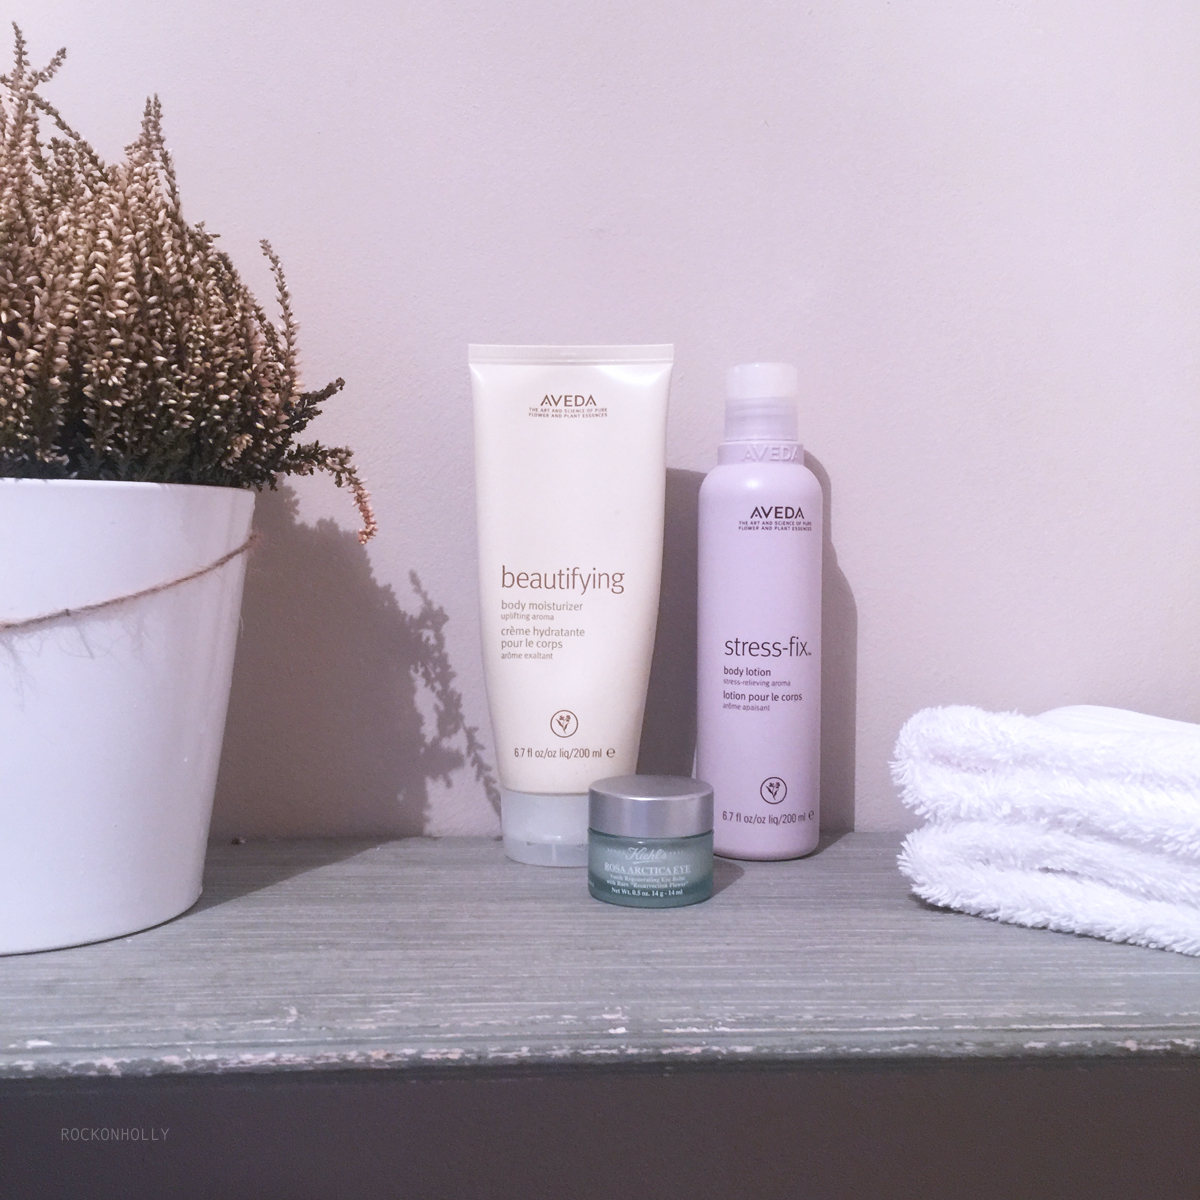 Destressing with Aveda